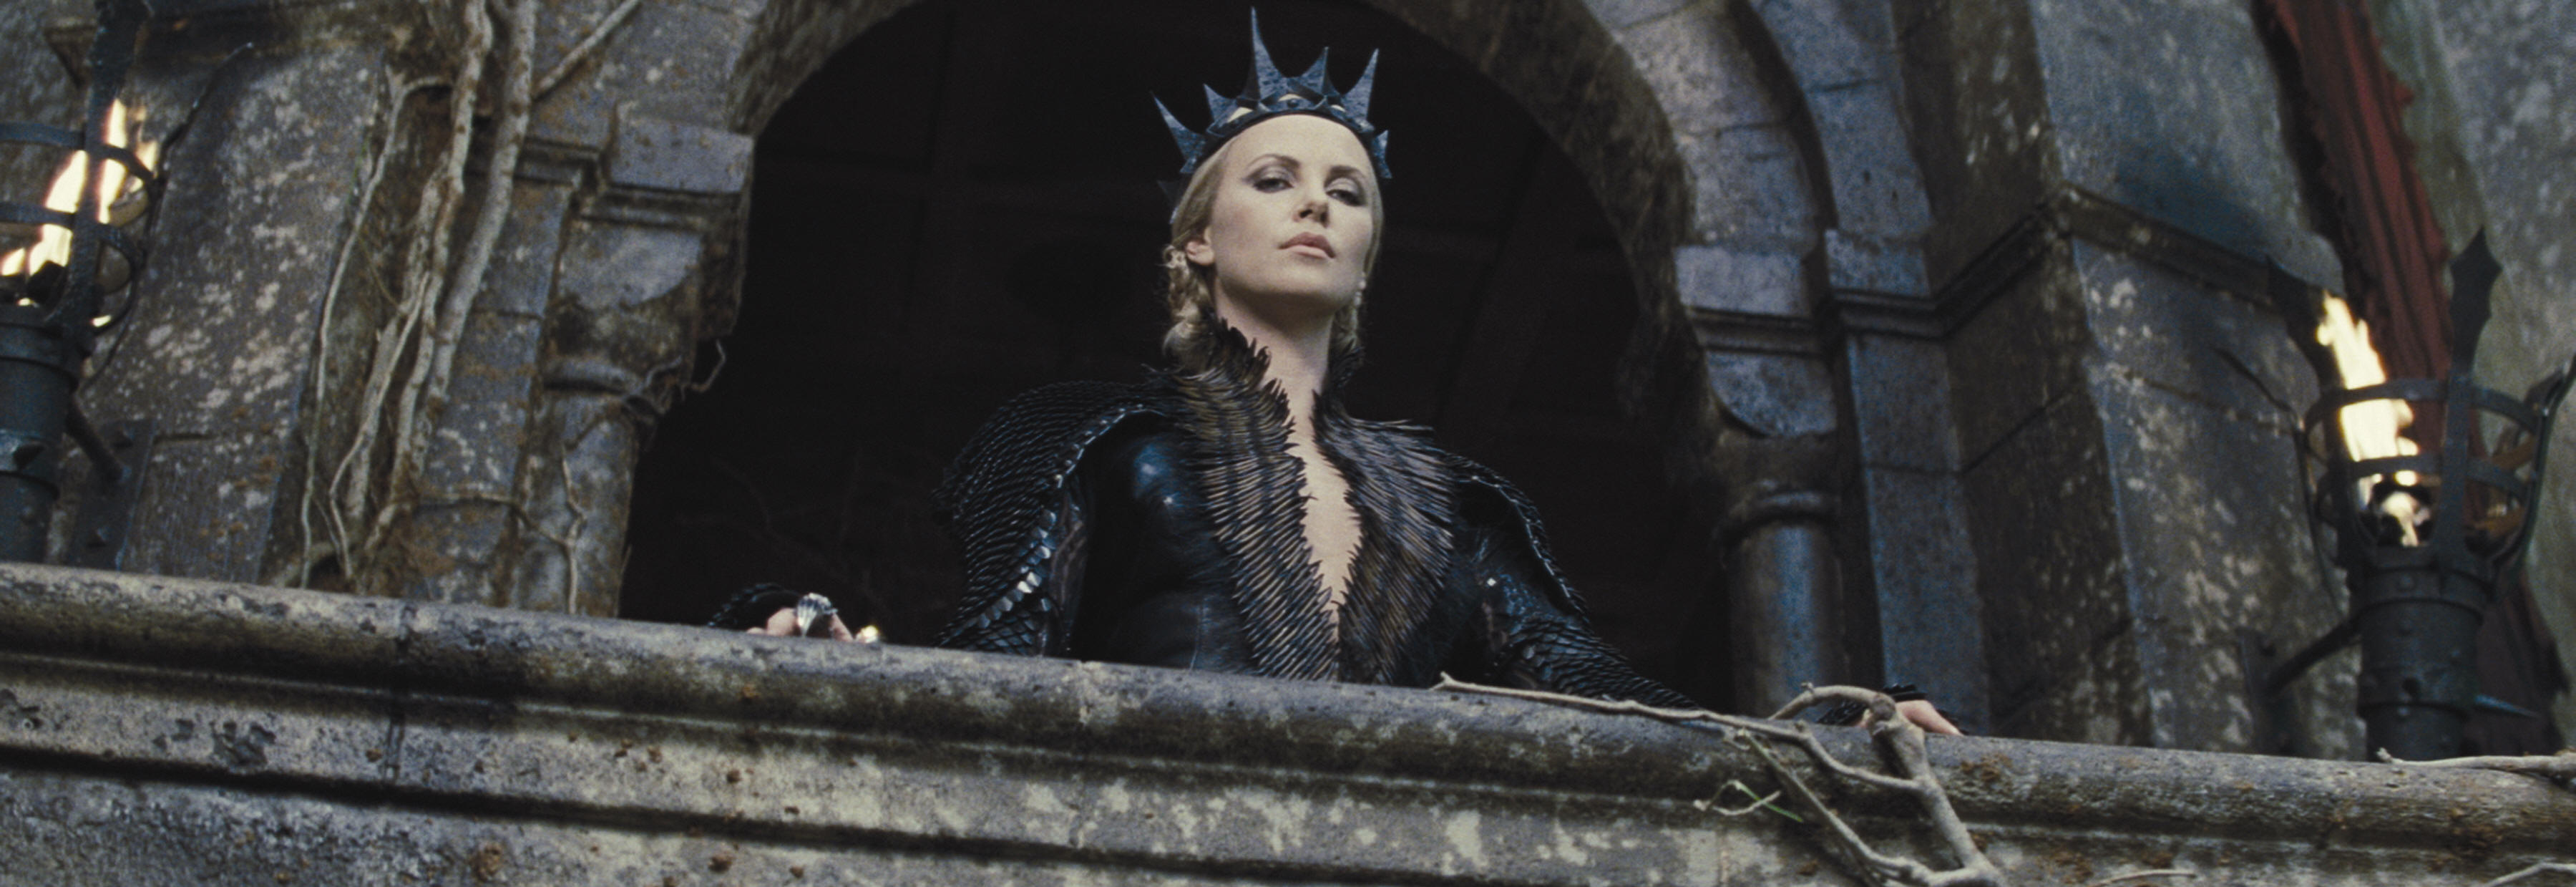 Charlize Theron as Queen Ravenna  Snow White and the Huntsmen picture image picture image